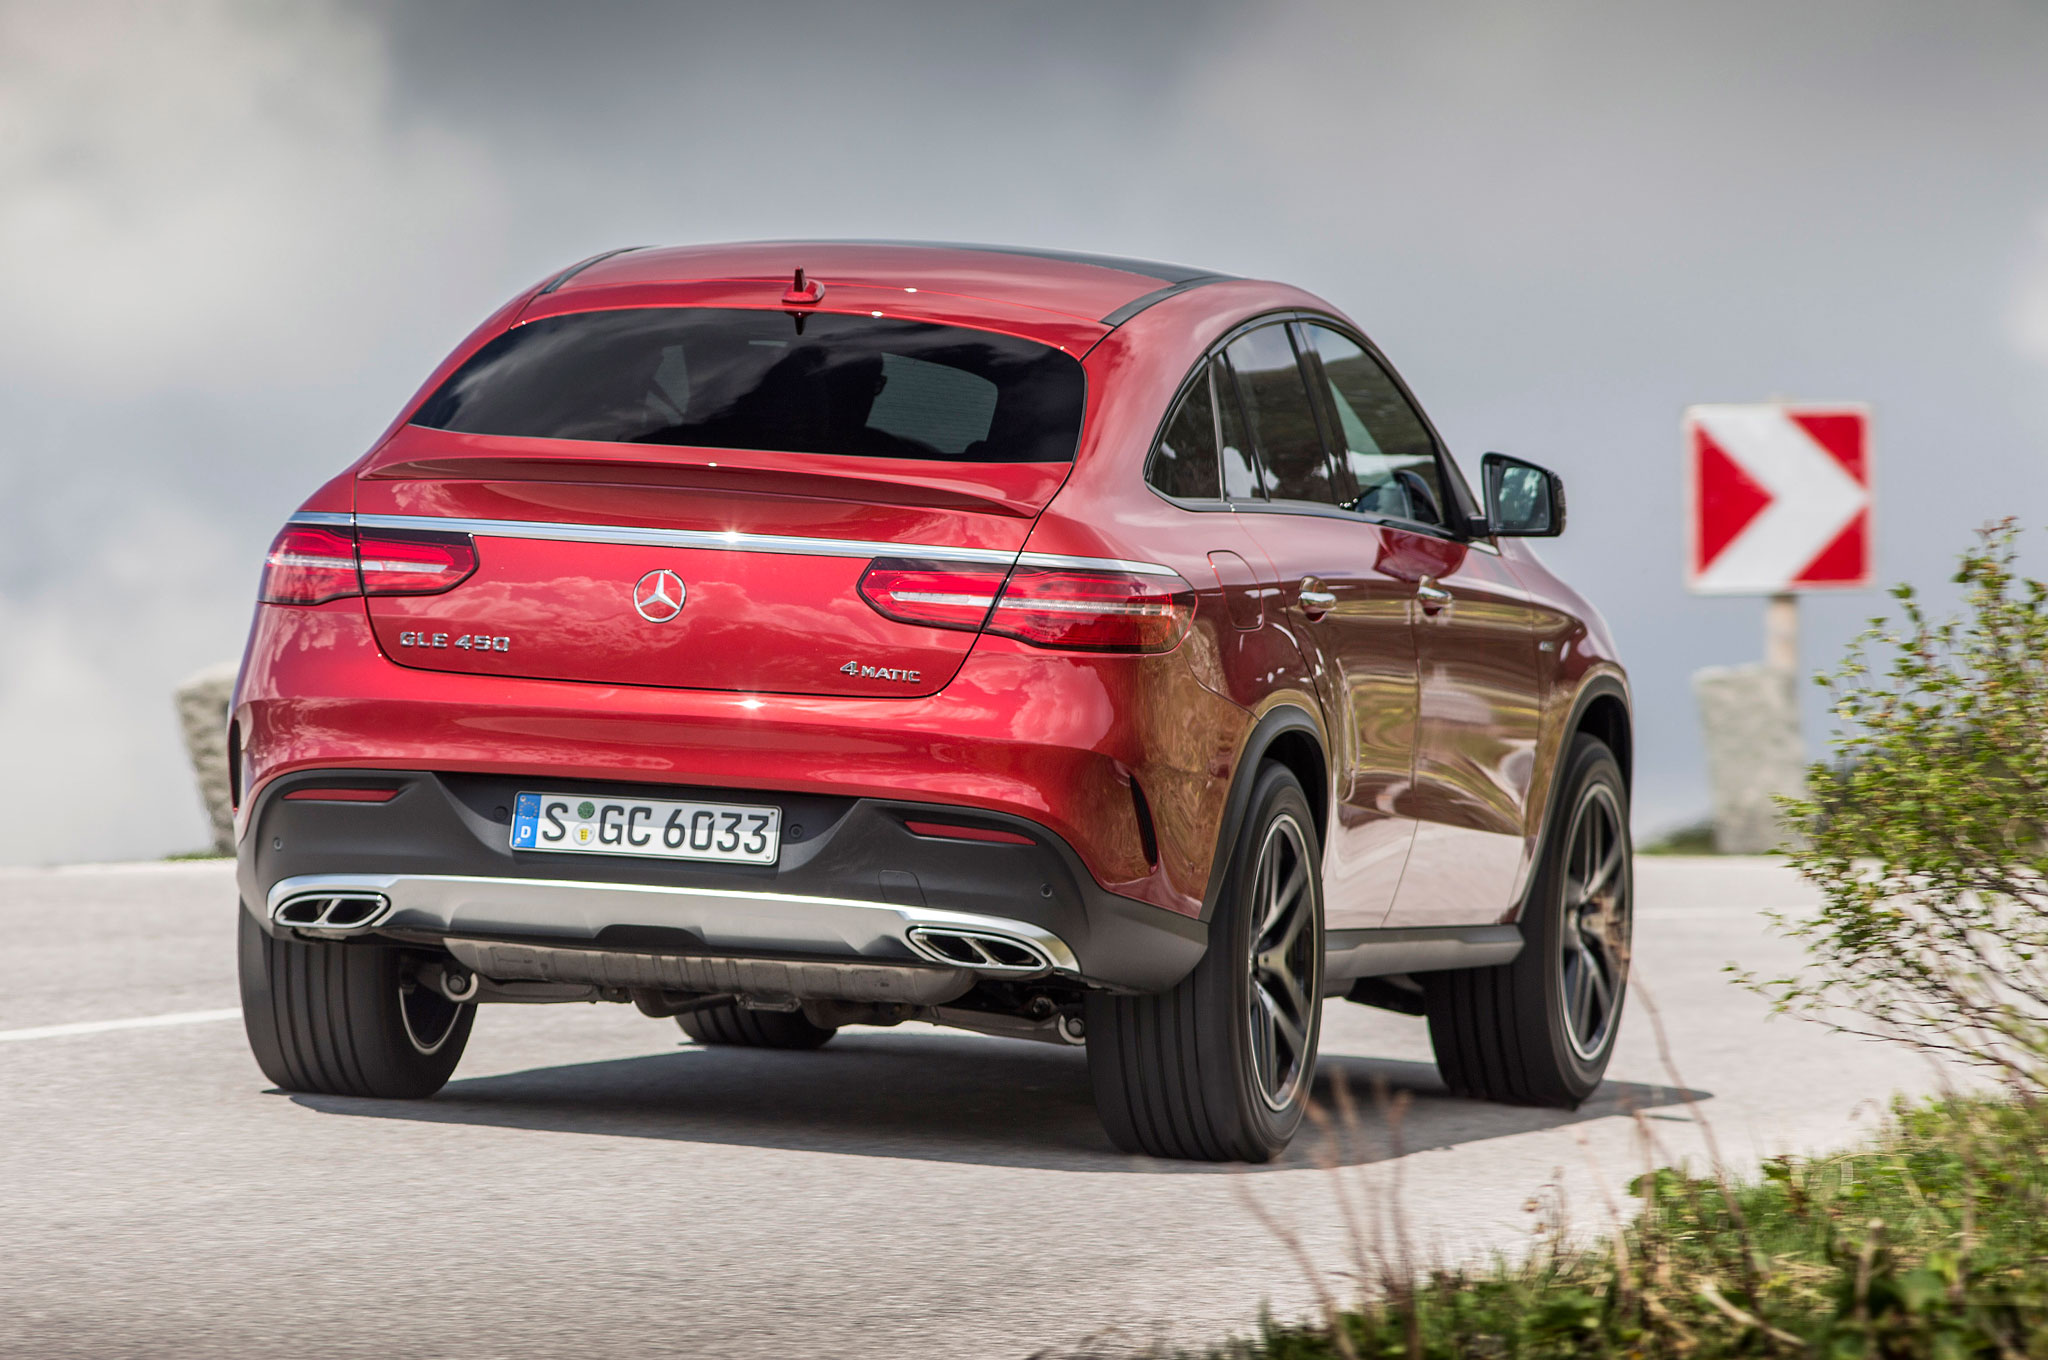 http://st.automobilemag.com/uploads/sites/11/2015/10/2016-Mercedes-Benz-GLE450-AMG-4Matic-Coupe-rear-three-quarter-in-motion-03.jpg